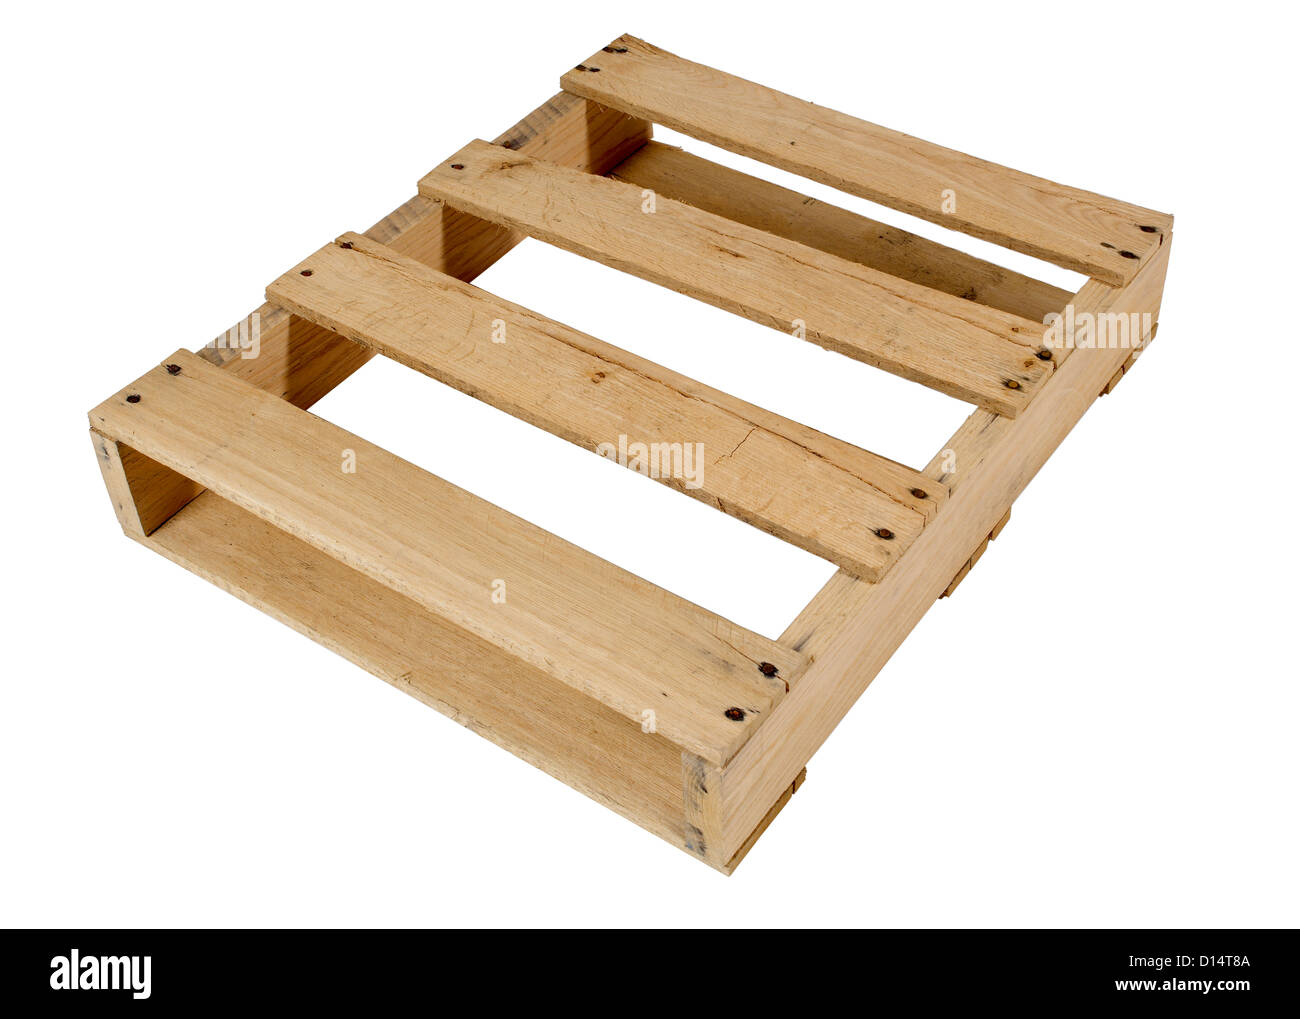 wood Pallet - Stock Image